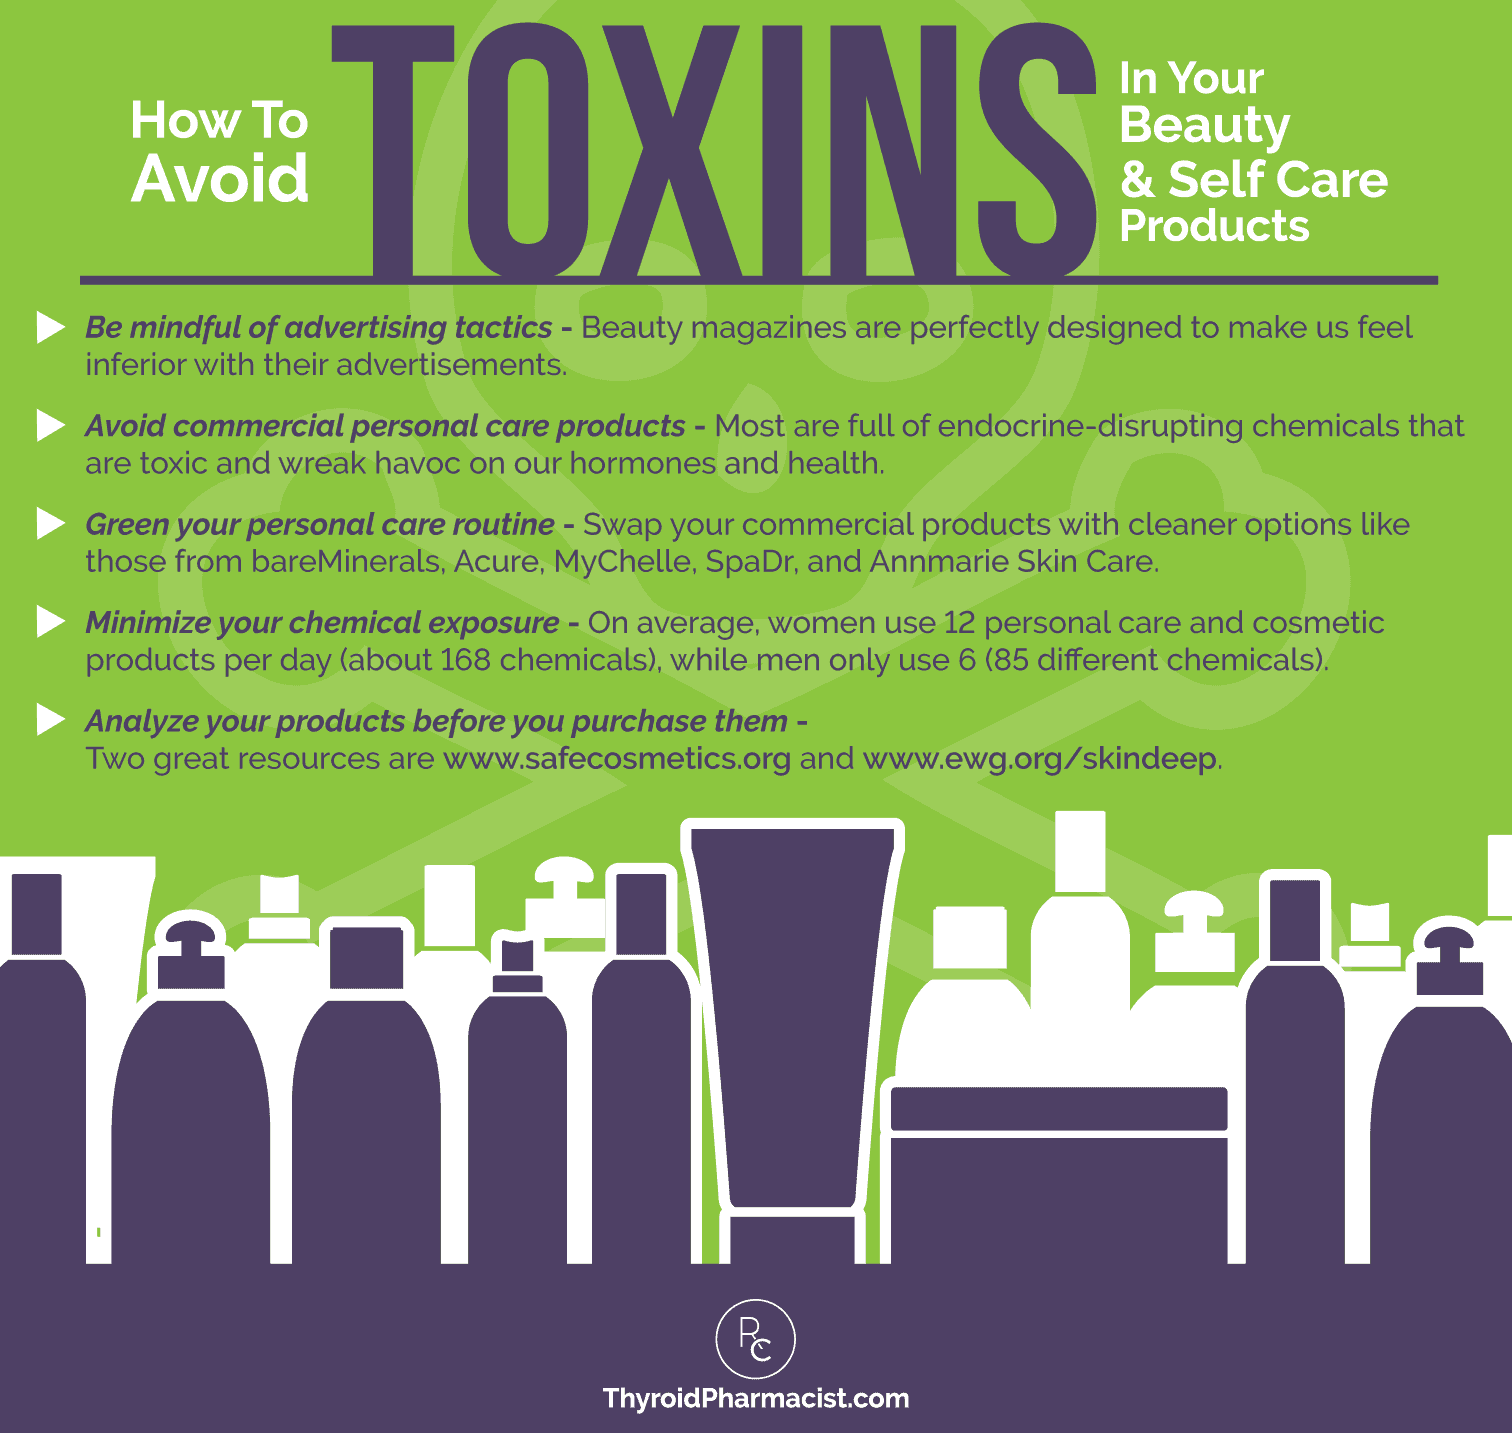 How to Avoid Toxins